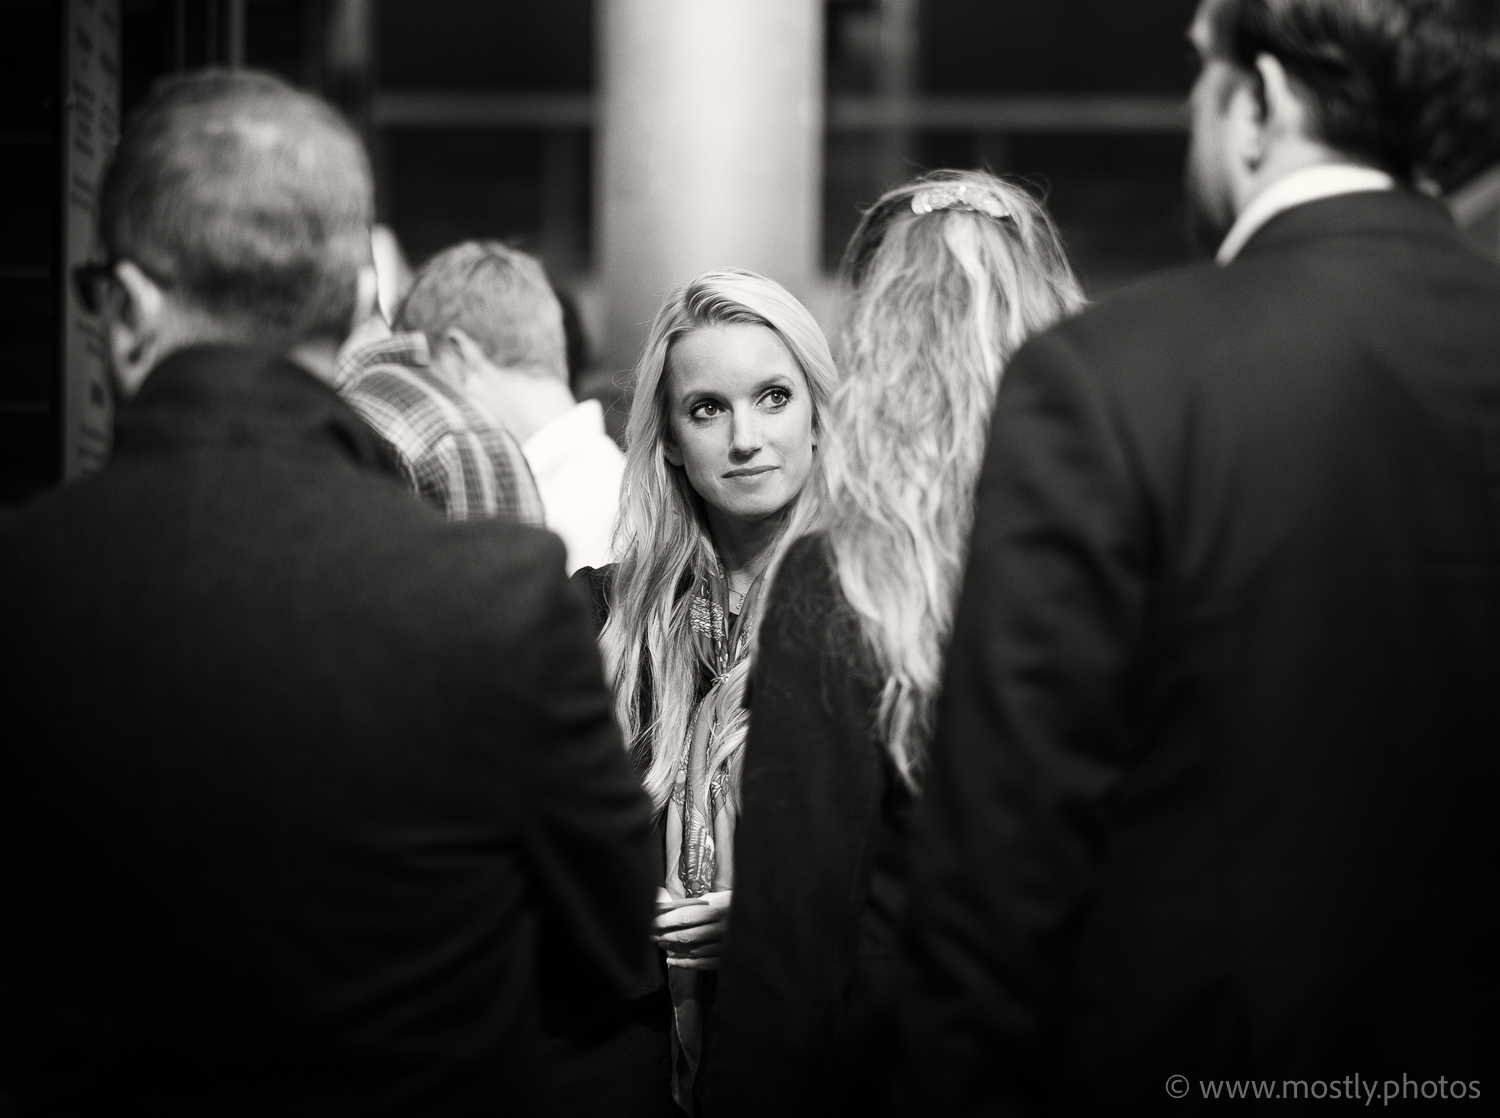 Fuji X-T2 - Fuji 56mm f1.2n - Candid Street Photography, London A Face in the Crowd